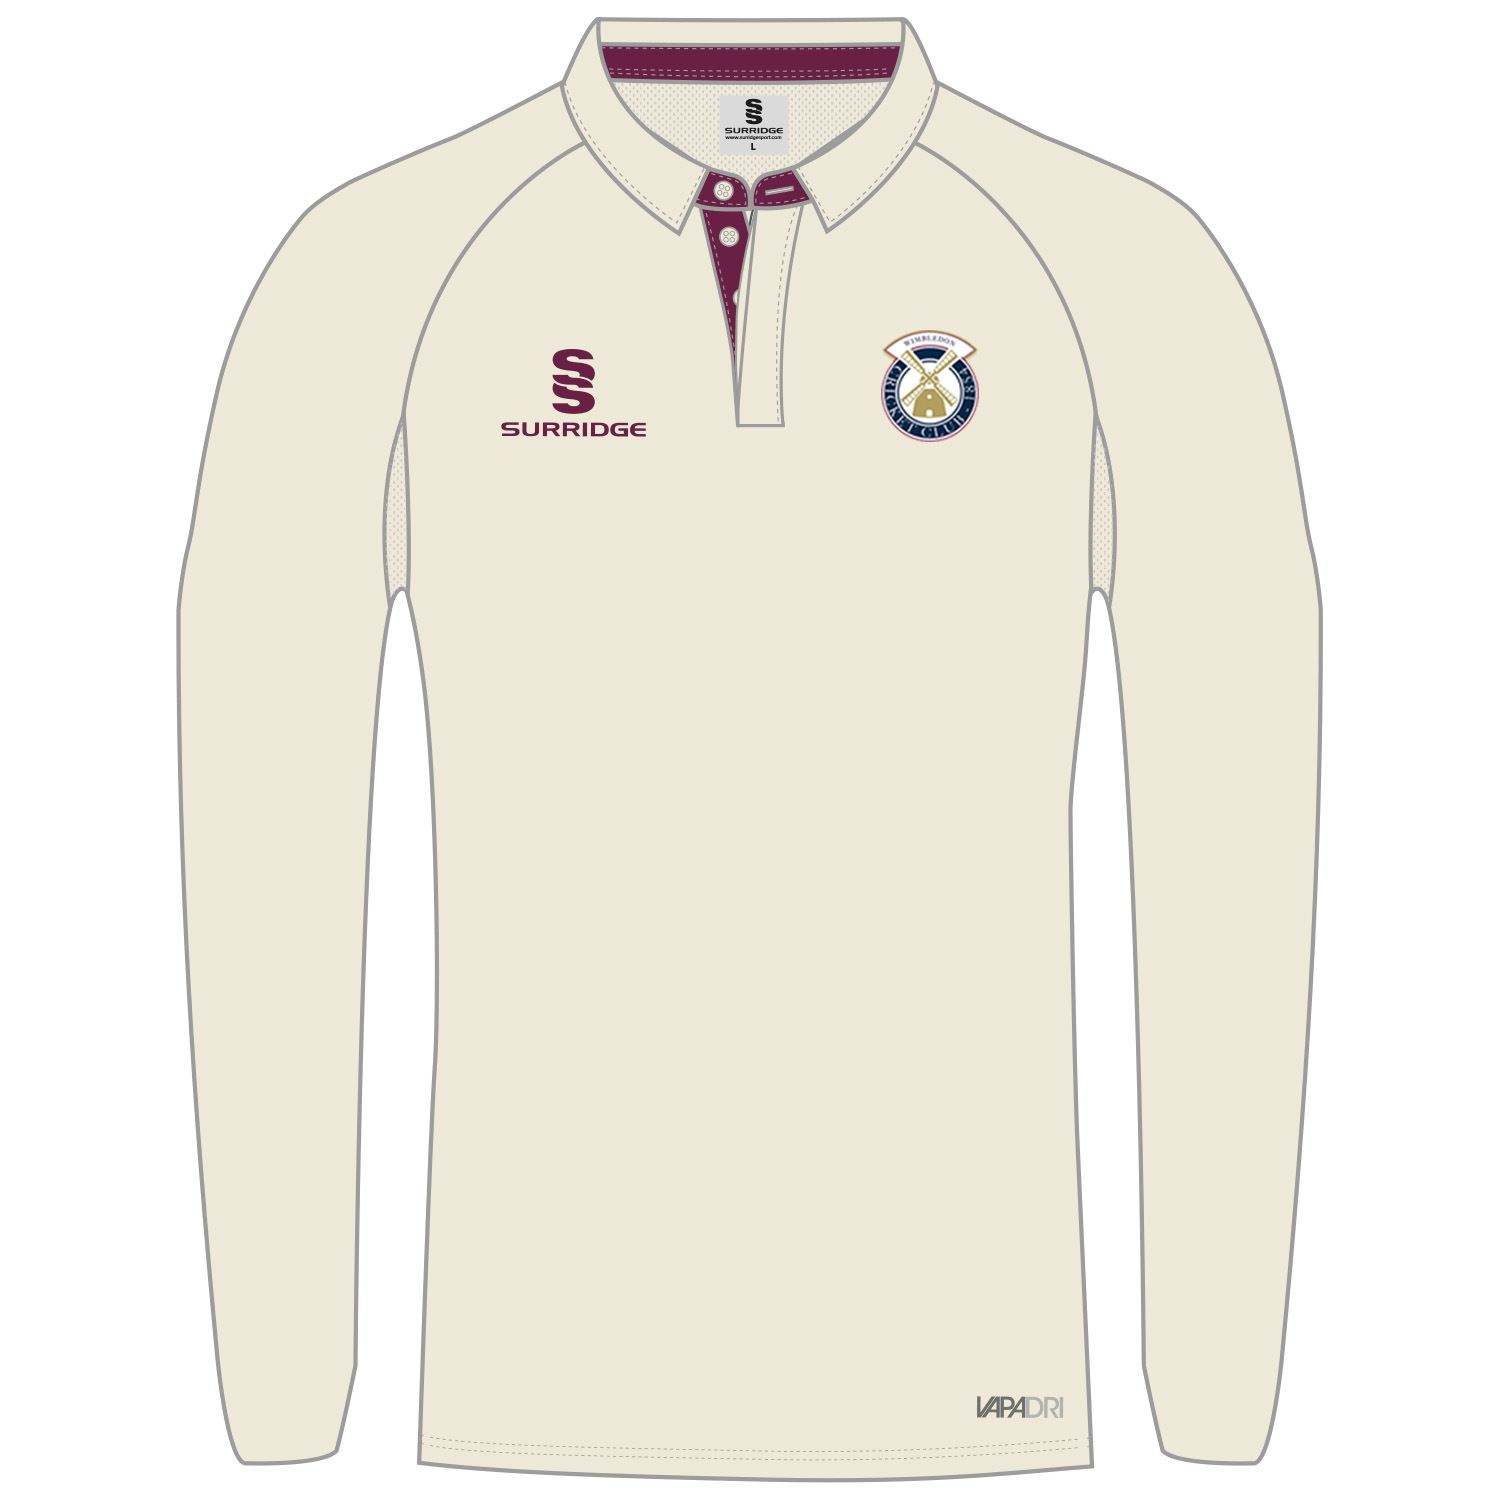 Surridge Sport Wimbledon Cricket Club Ergo Long Sleeve Cricket Shirt